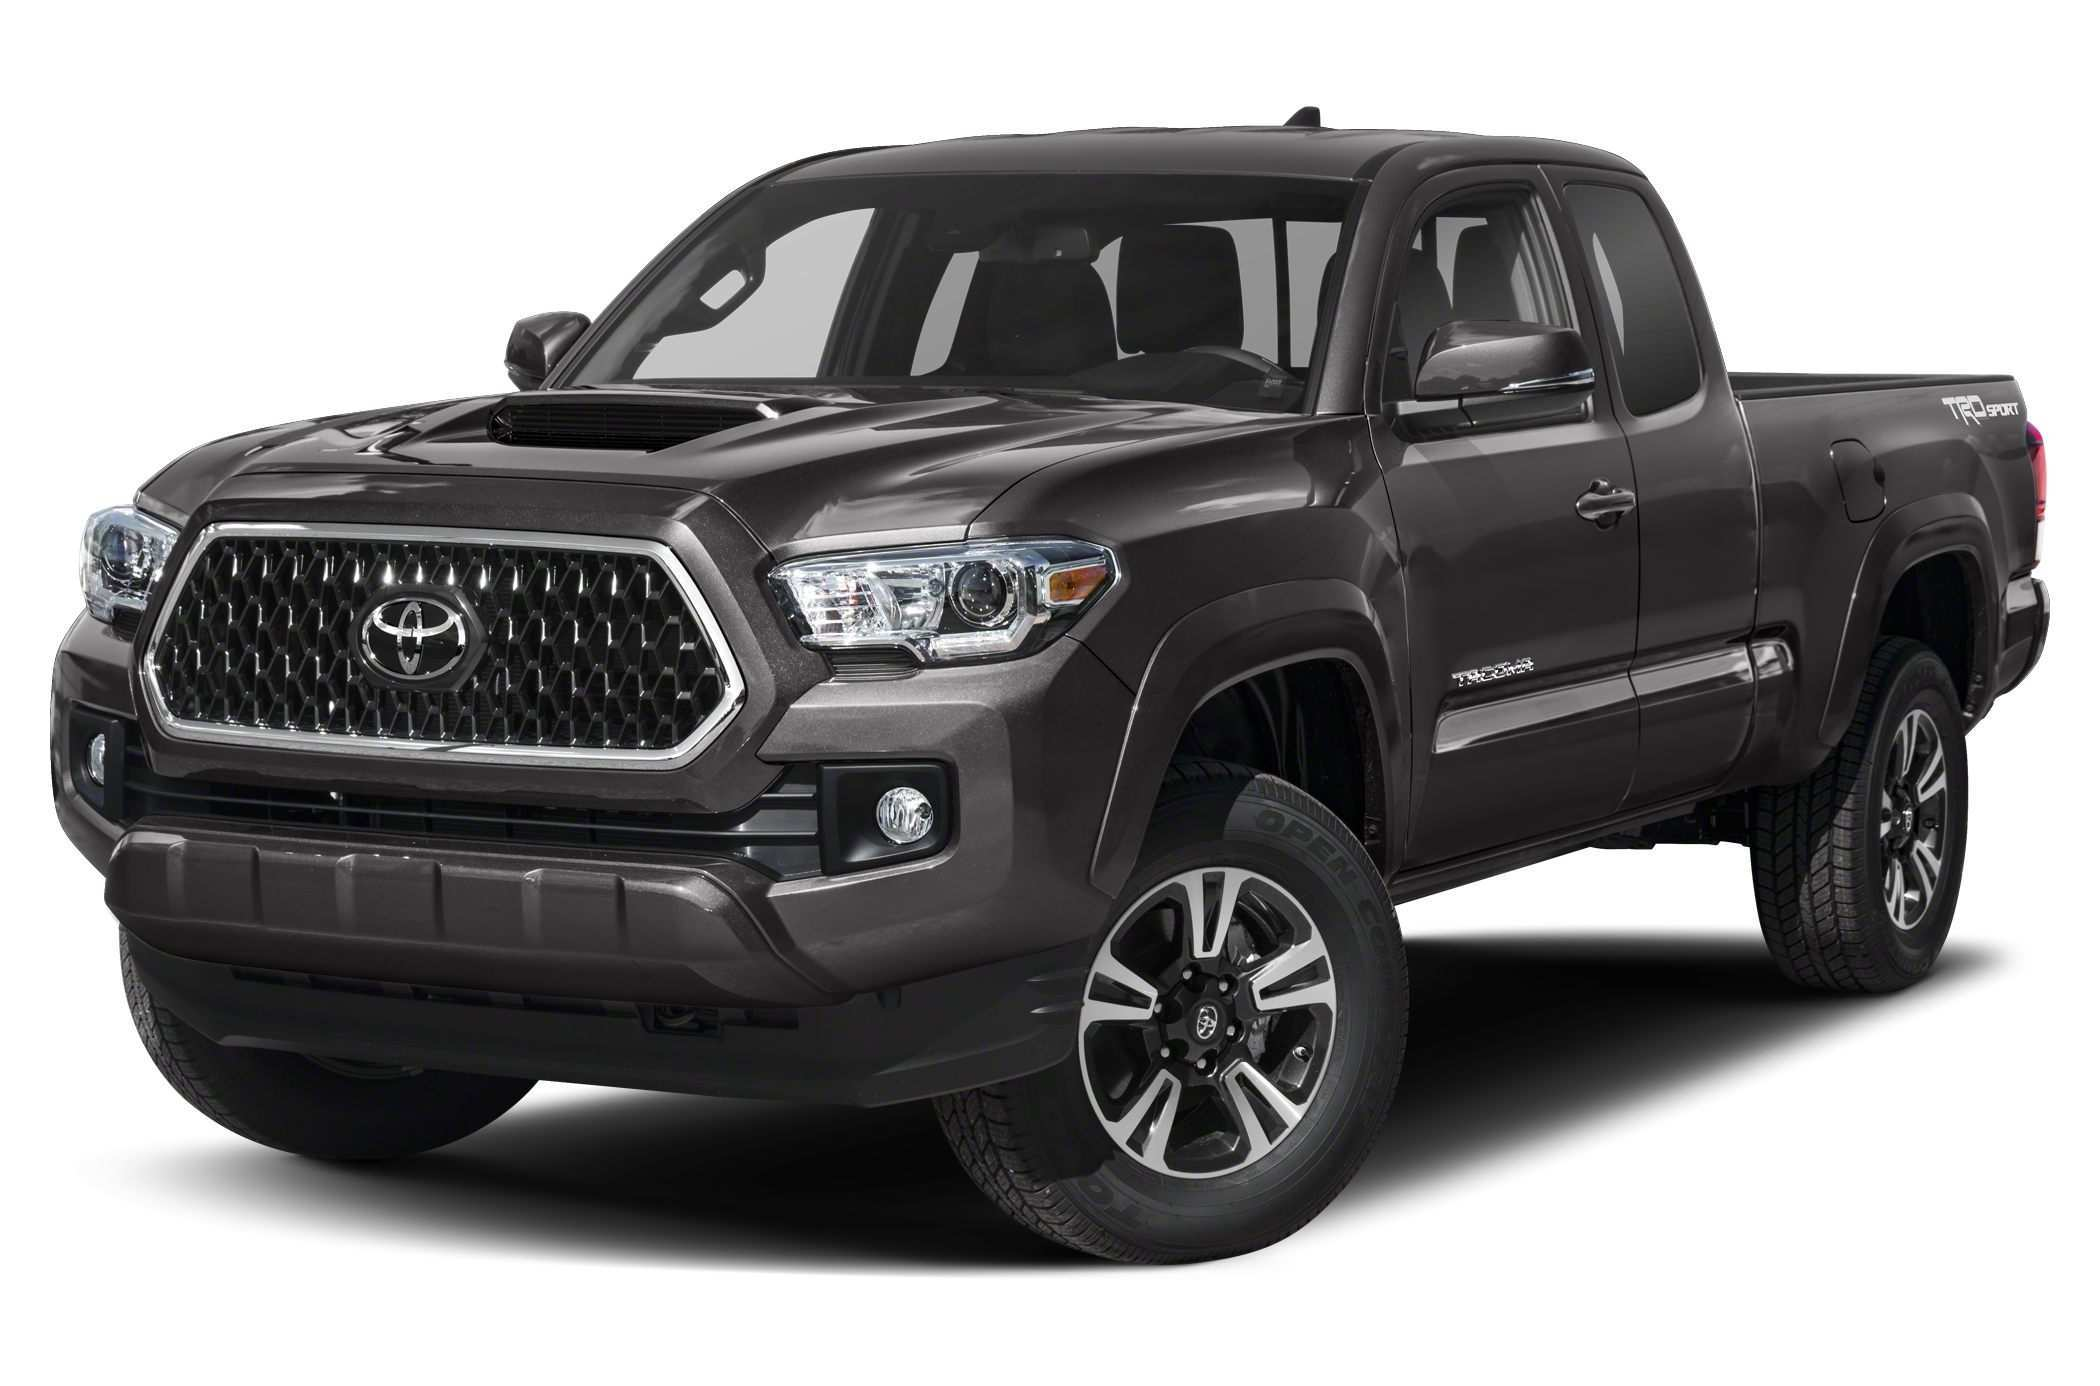 43 Great Best 2019 Mazda Truck Usa First Drive Images with Best 2019 Mazda Truck Usa First Drive